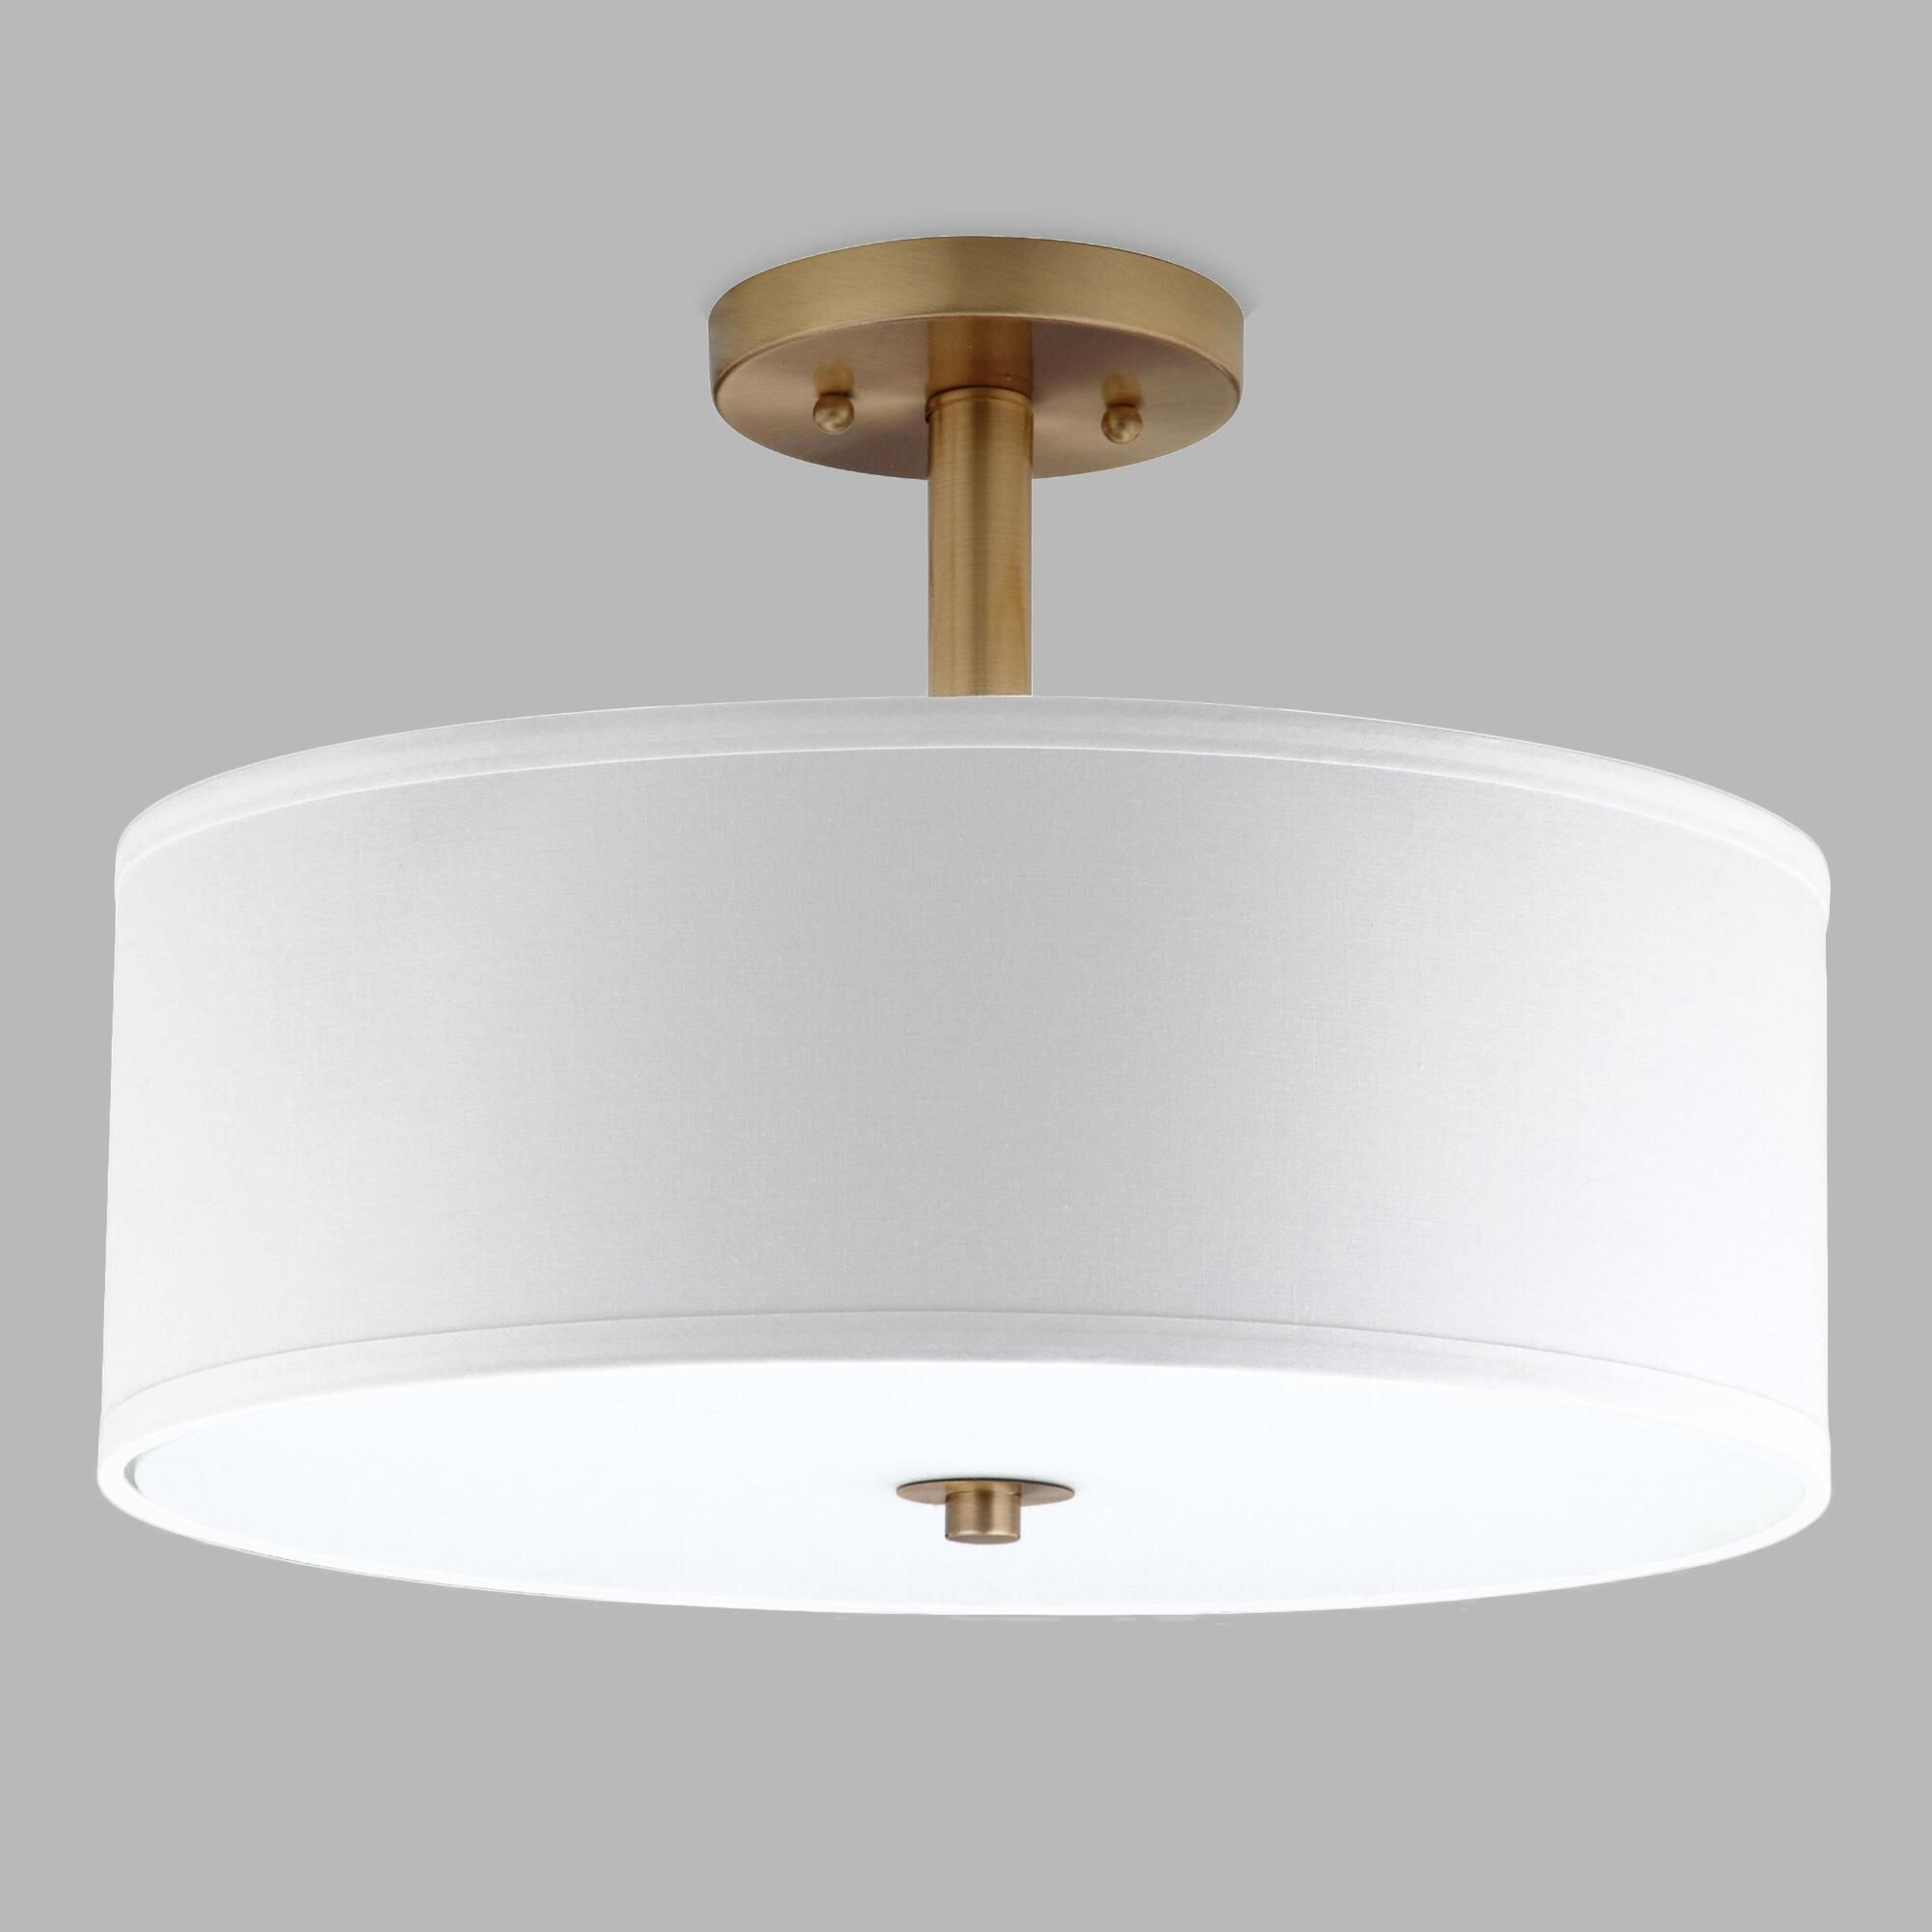 Gold and white flush mount alysian ceiling light by world market